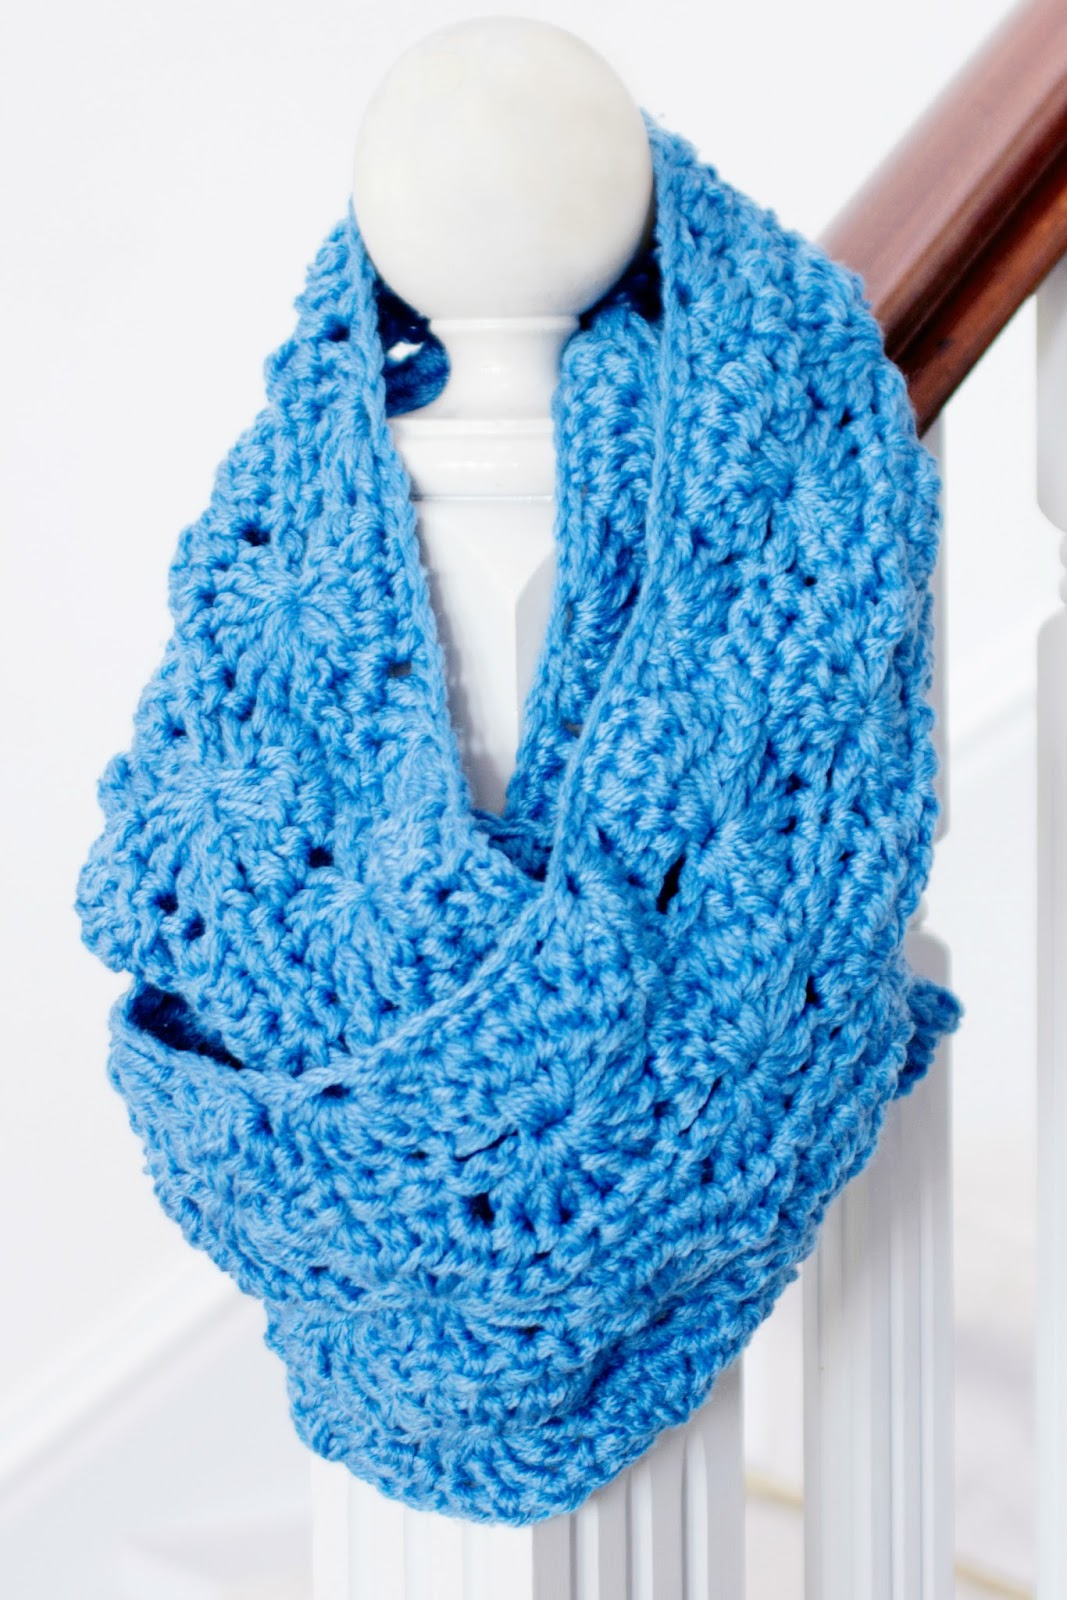 Free Crochet Unique Scarf Patterns : Hopeful Honey Craft, Crochet, Create: 10 Free Unique ...